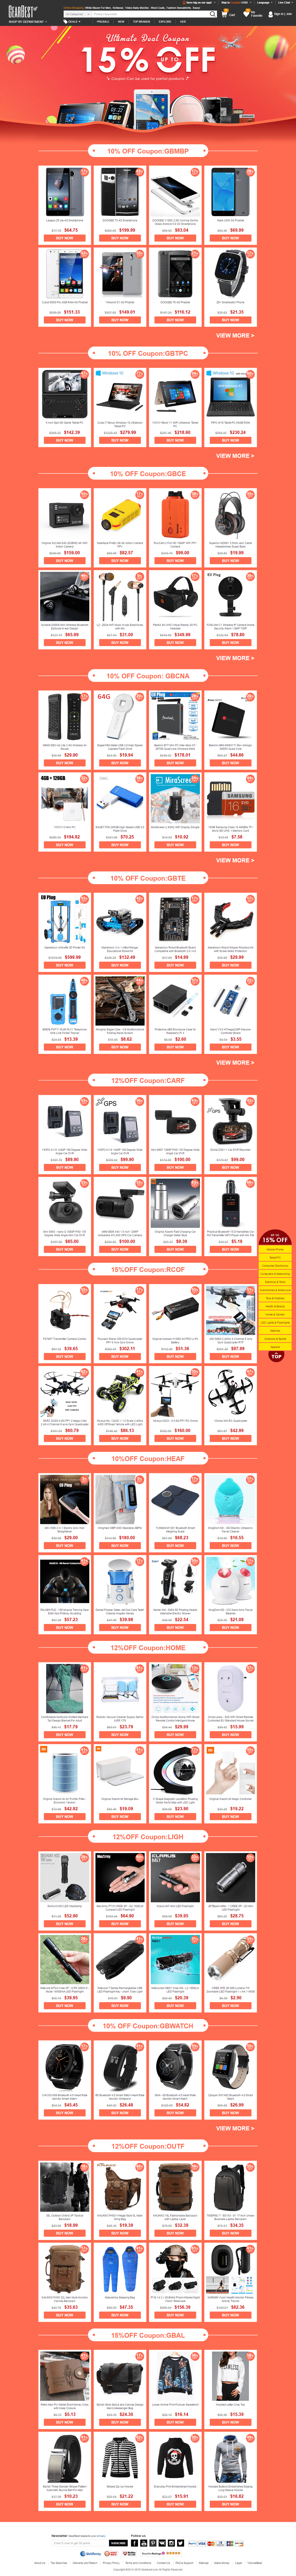 Best Electronics and Gadgets Flash Sale Product List